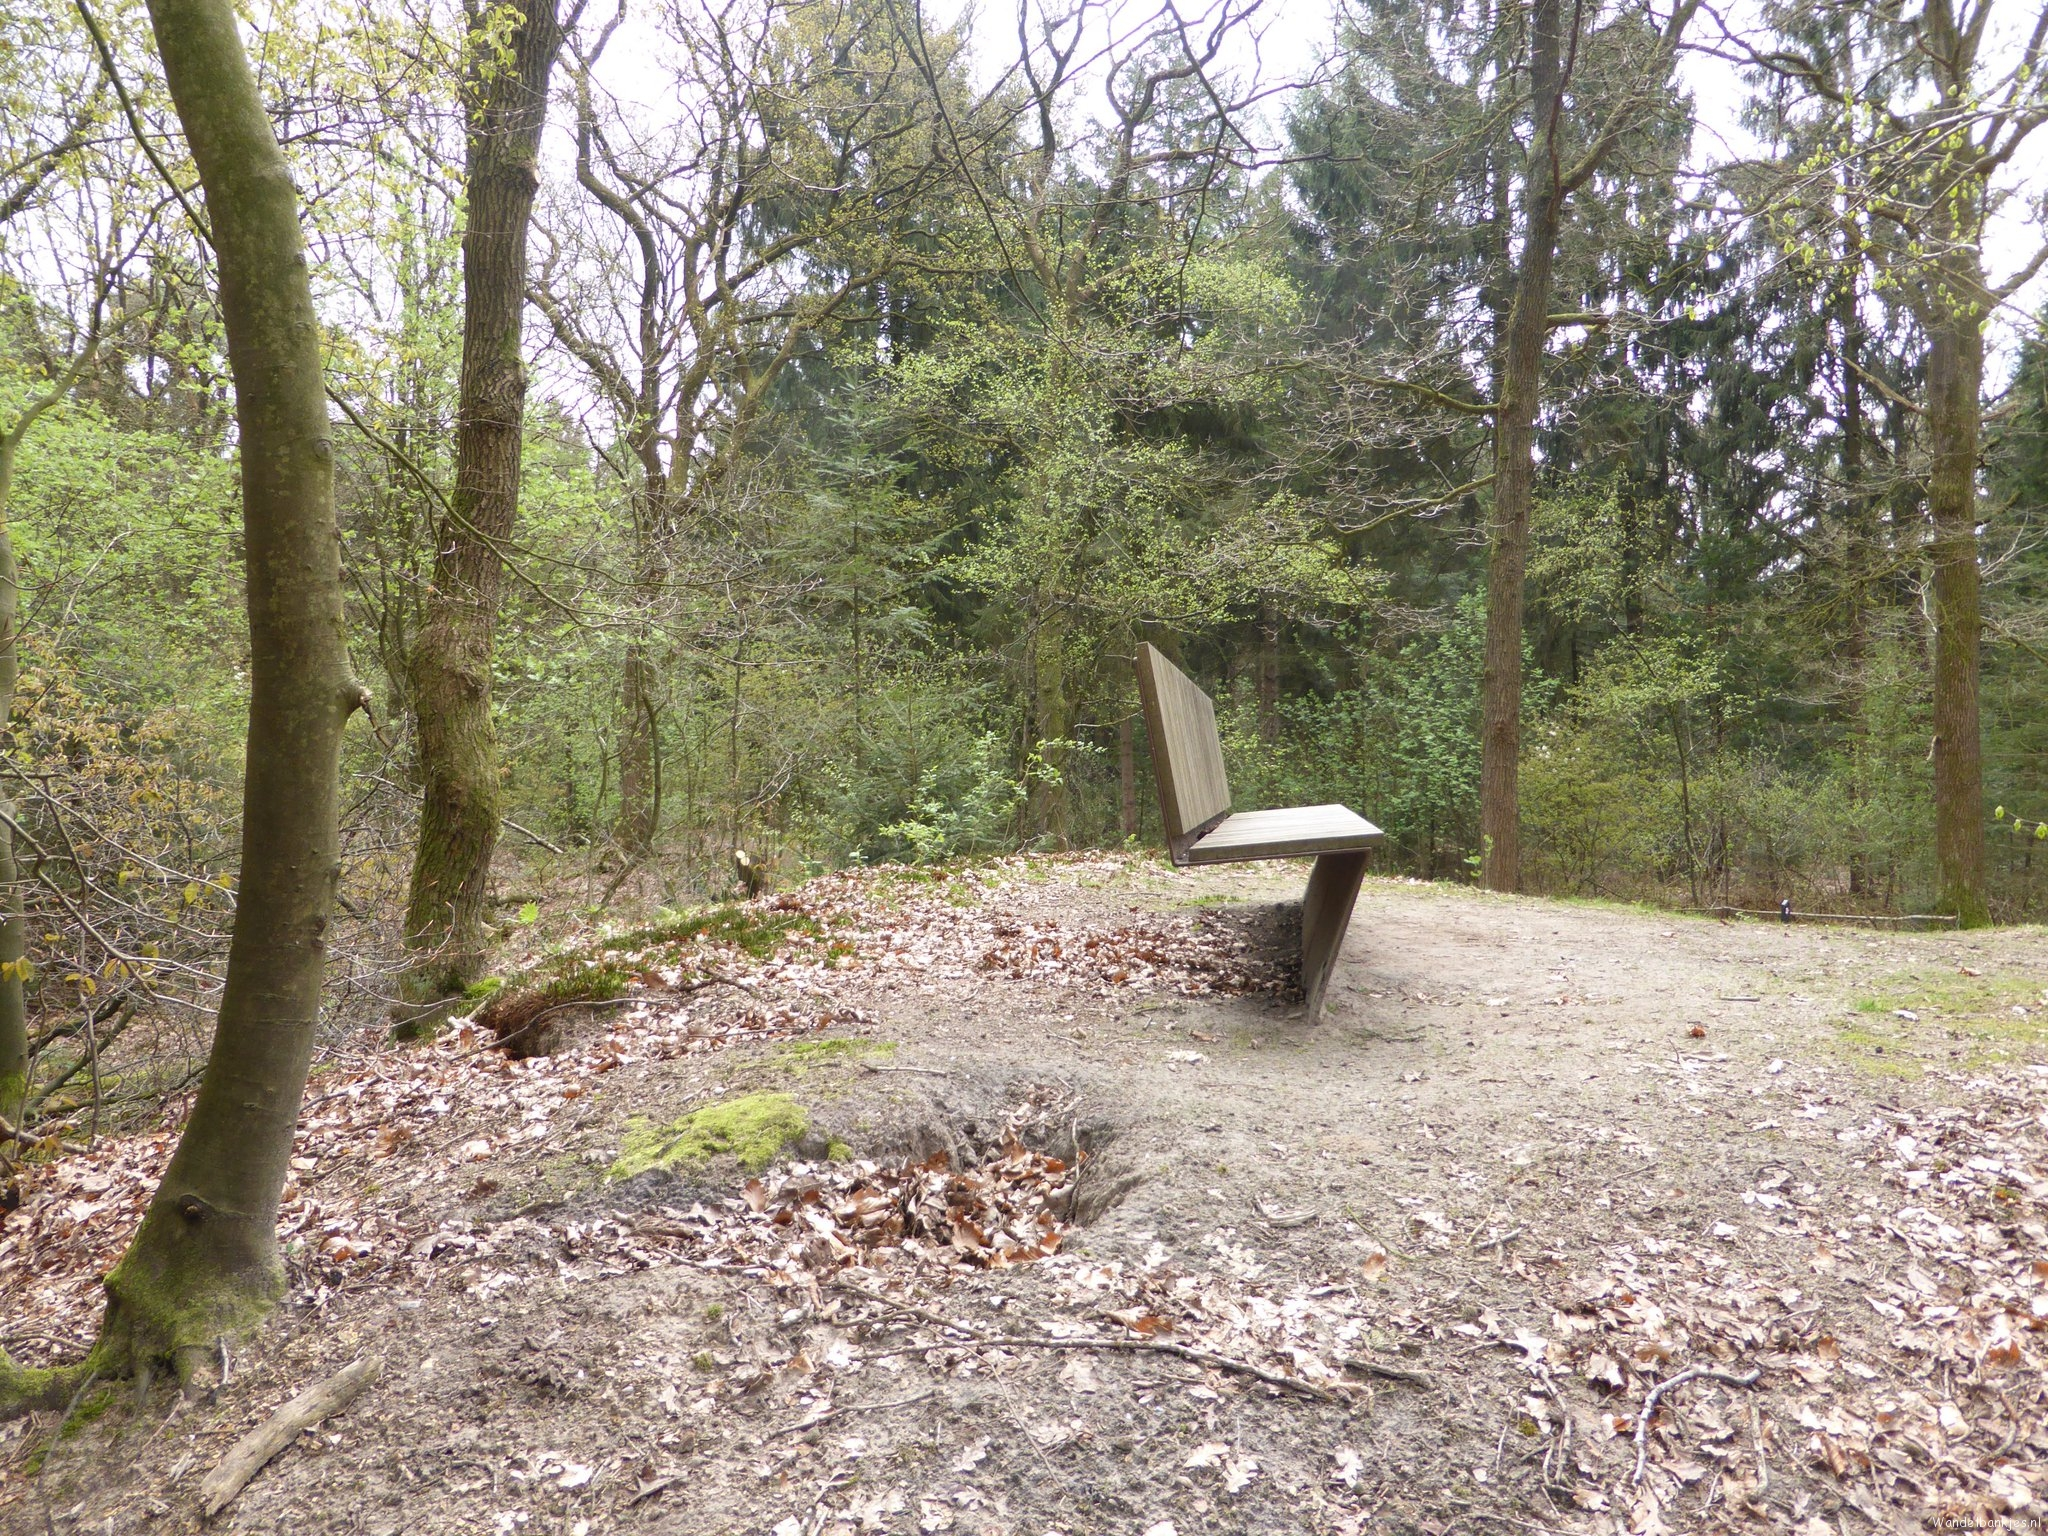 rt-willemwandelt-hoogeveen-savings-bankbos-monument-walking benches-walking benches-westerborkpad-httpst-comqlcqydtp2